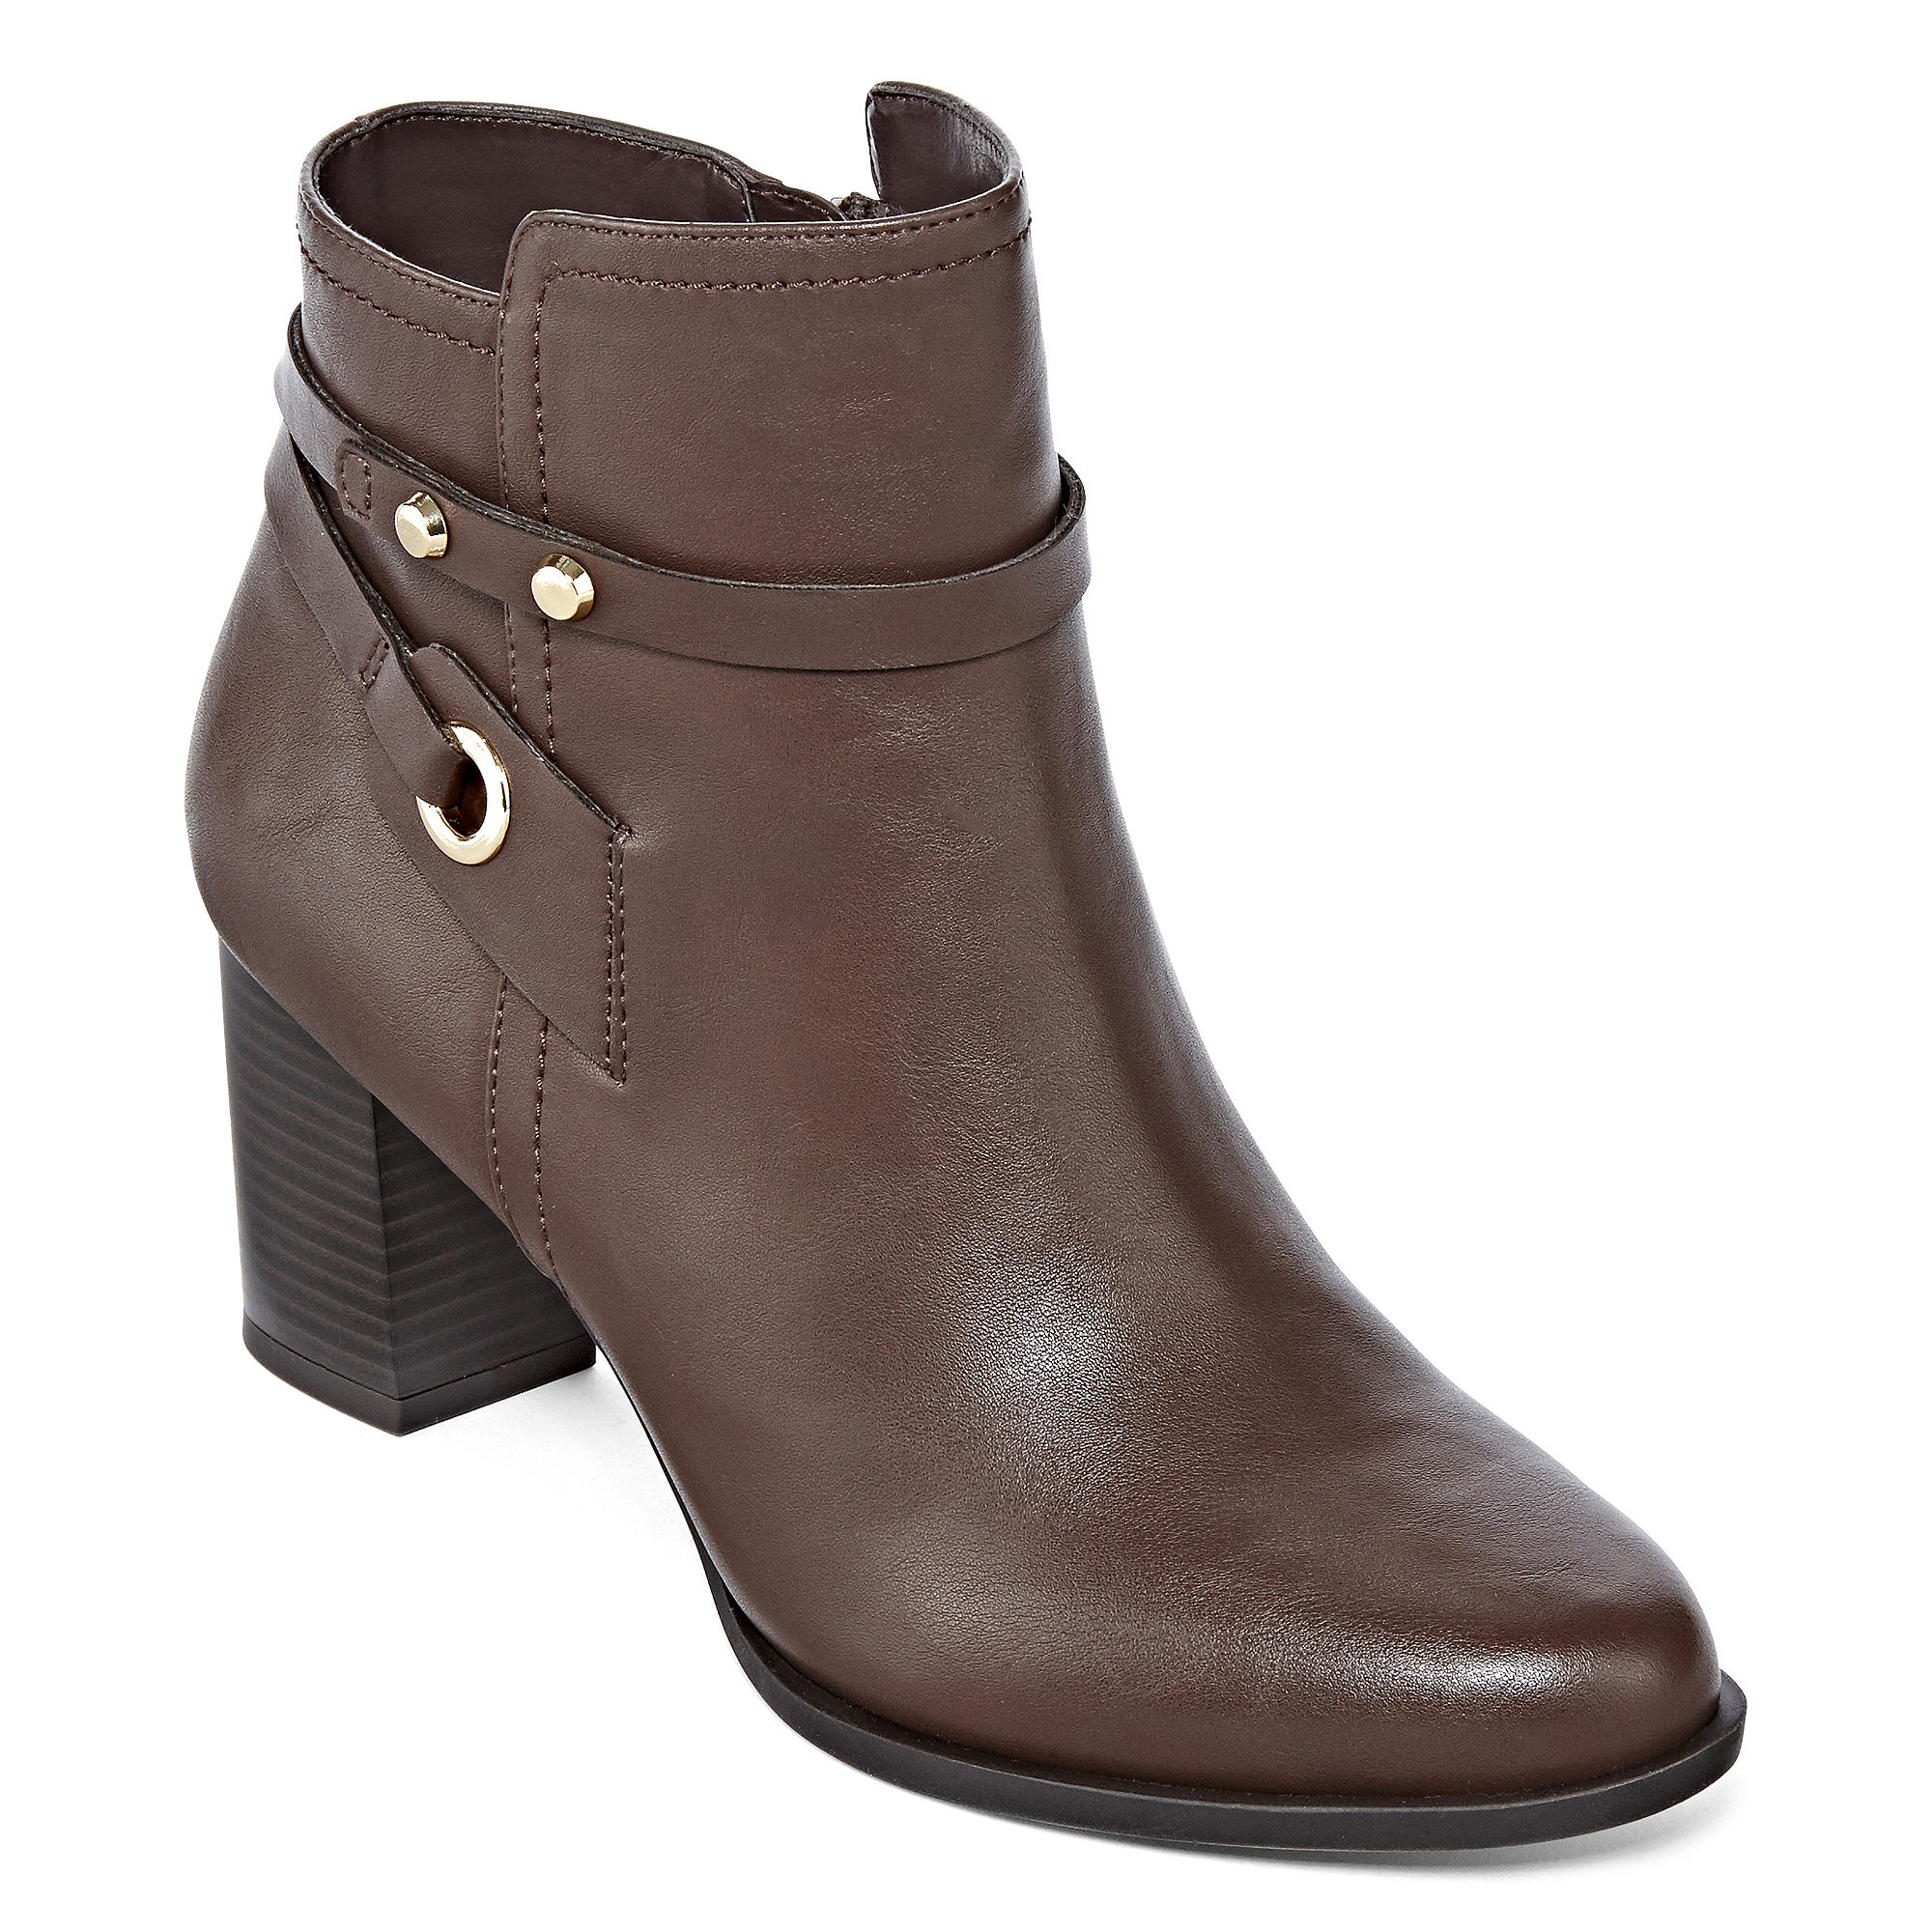 9a10fe99529 UPC 010076010018 - Liz Claiborne Babin Heeled Ankle Booties ...